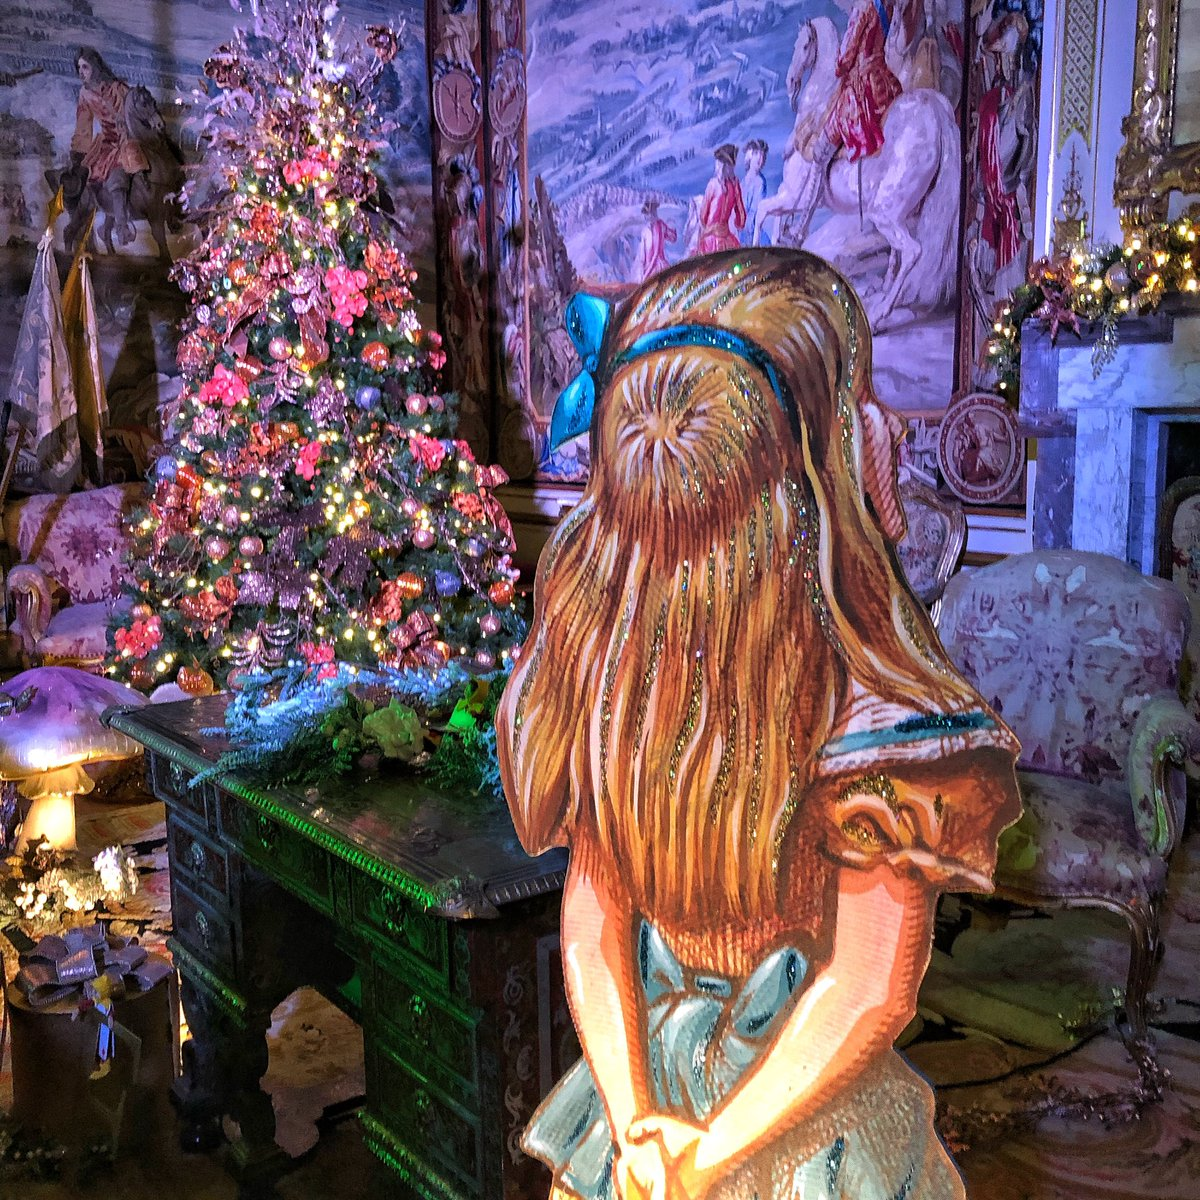 Inside the house: Alice at the Palace at Blenheim Palace Christmas. So fun! 🐰🎄🕳 ____________________________________ #aliceinthepalace #blenheim #aliceinwonderland #christmas #blenheimpalace #drinkme #christmastime @BlenheimPalace